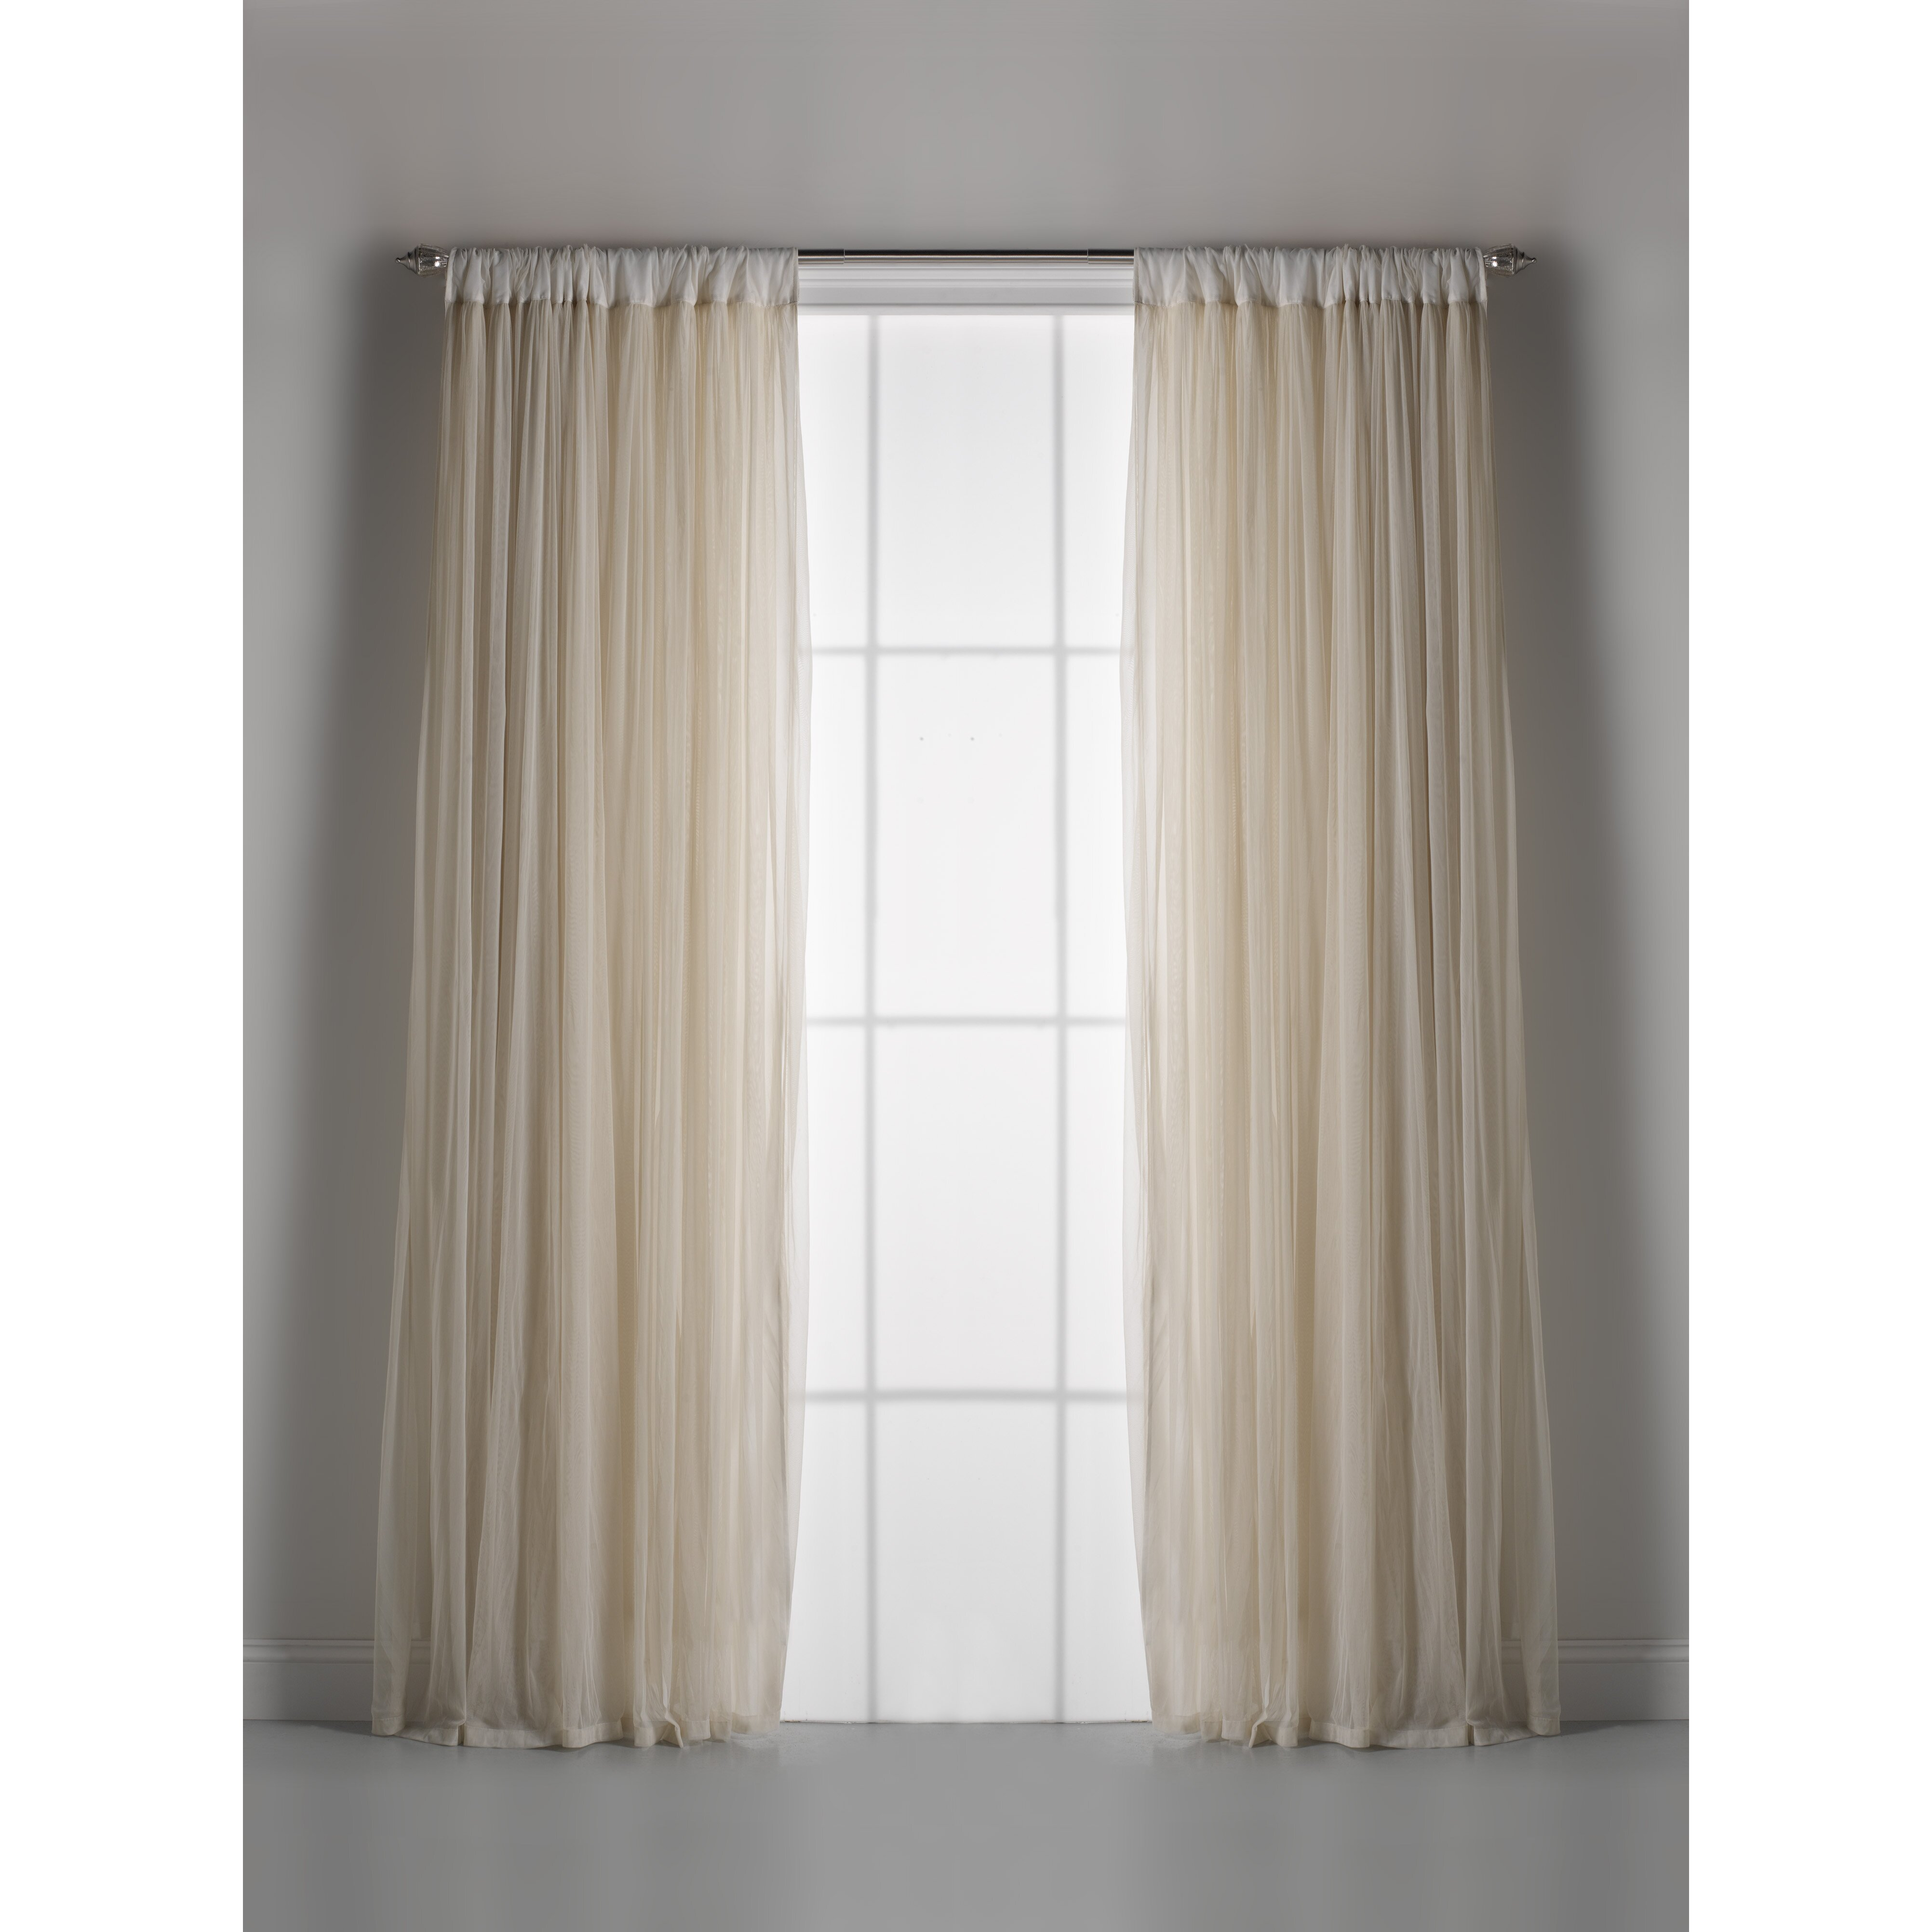 Turn Off Cascading Windows Couture Dreams Whisper % Rod Pocket Window Treatment